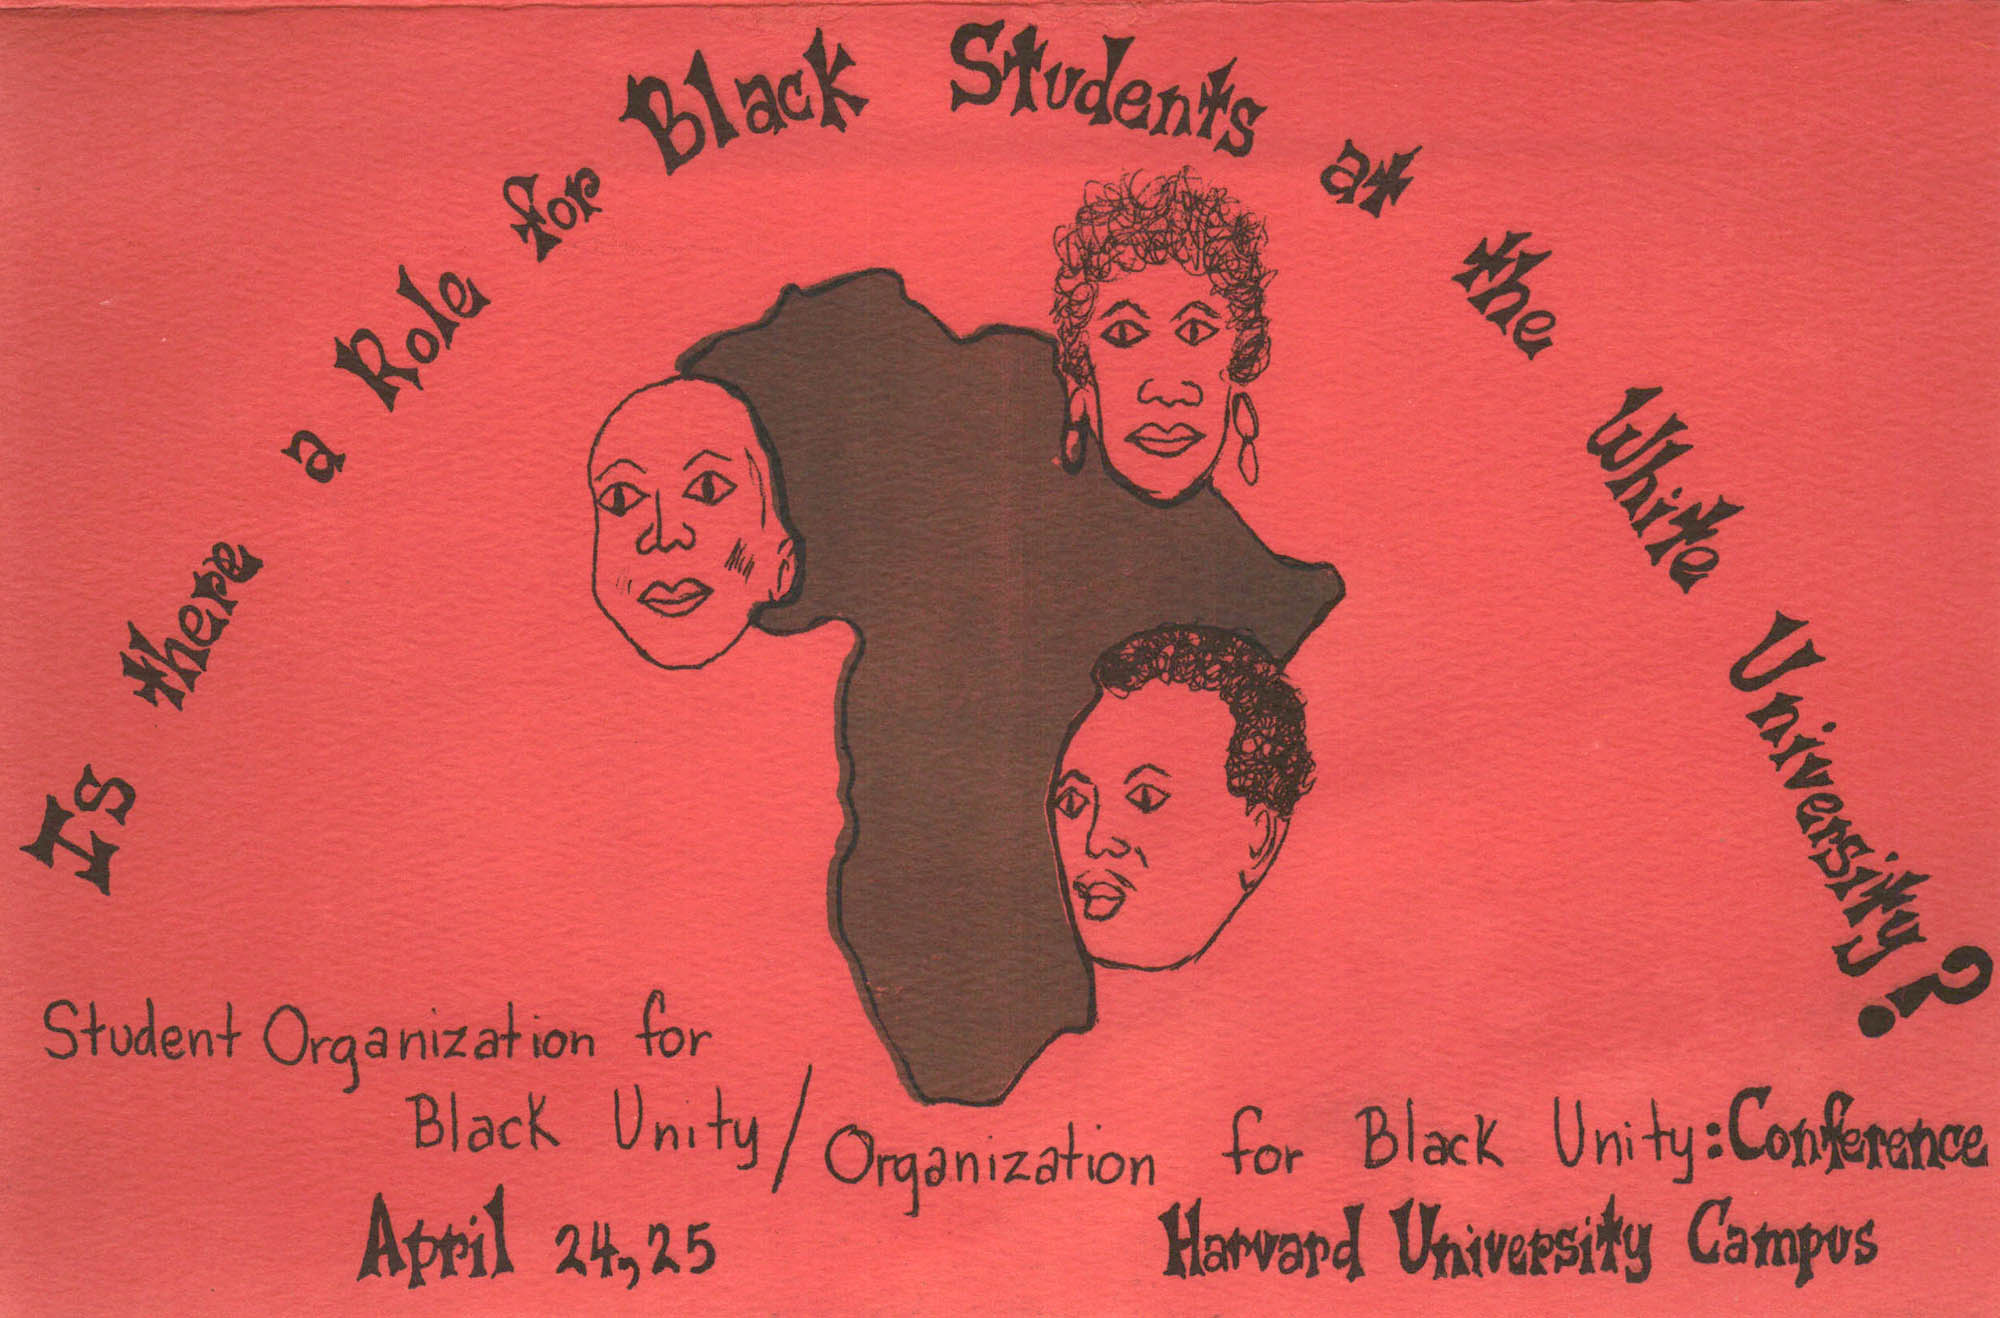 Student Organization for Black Unity Conference, Howard University